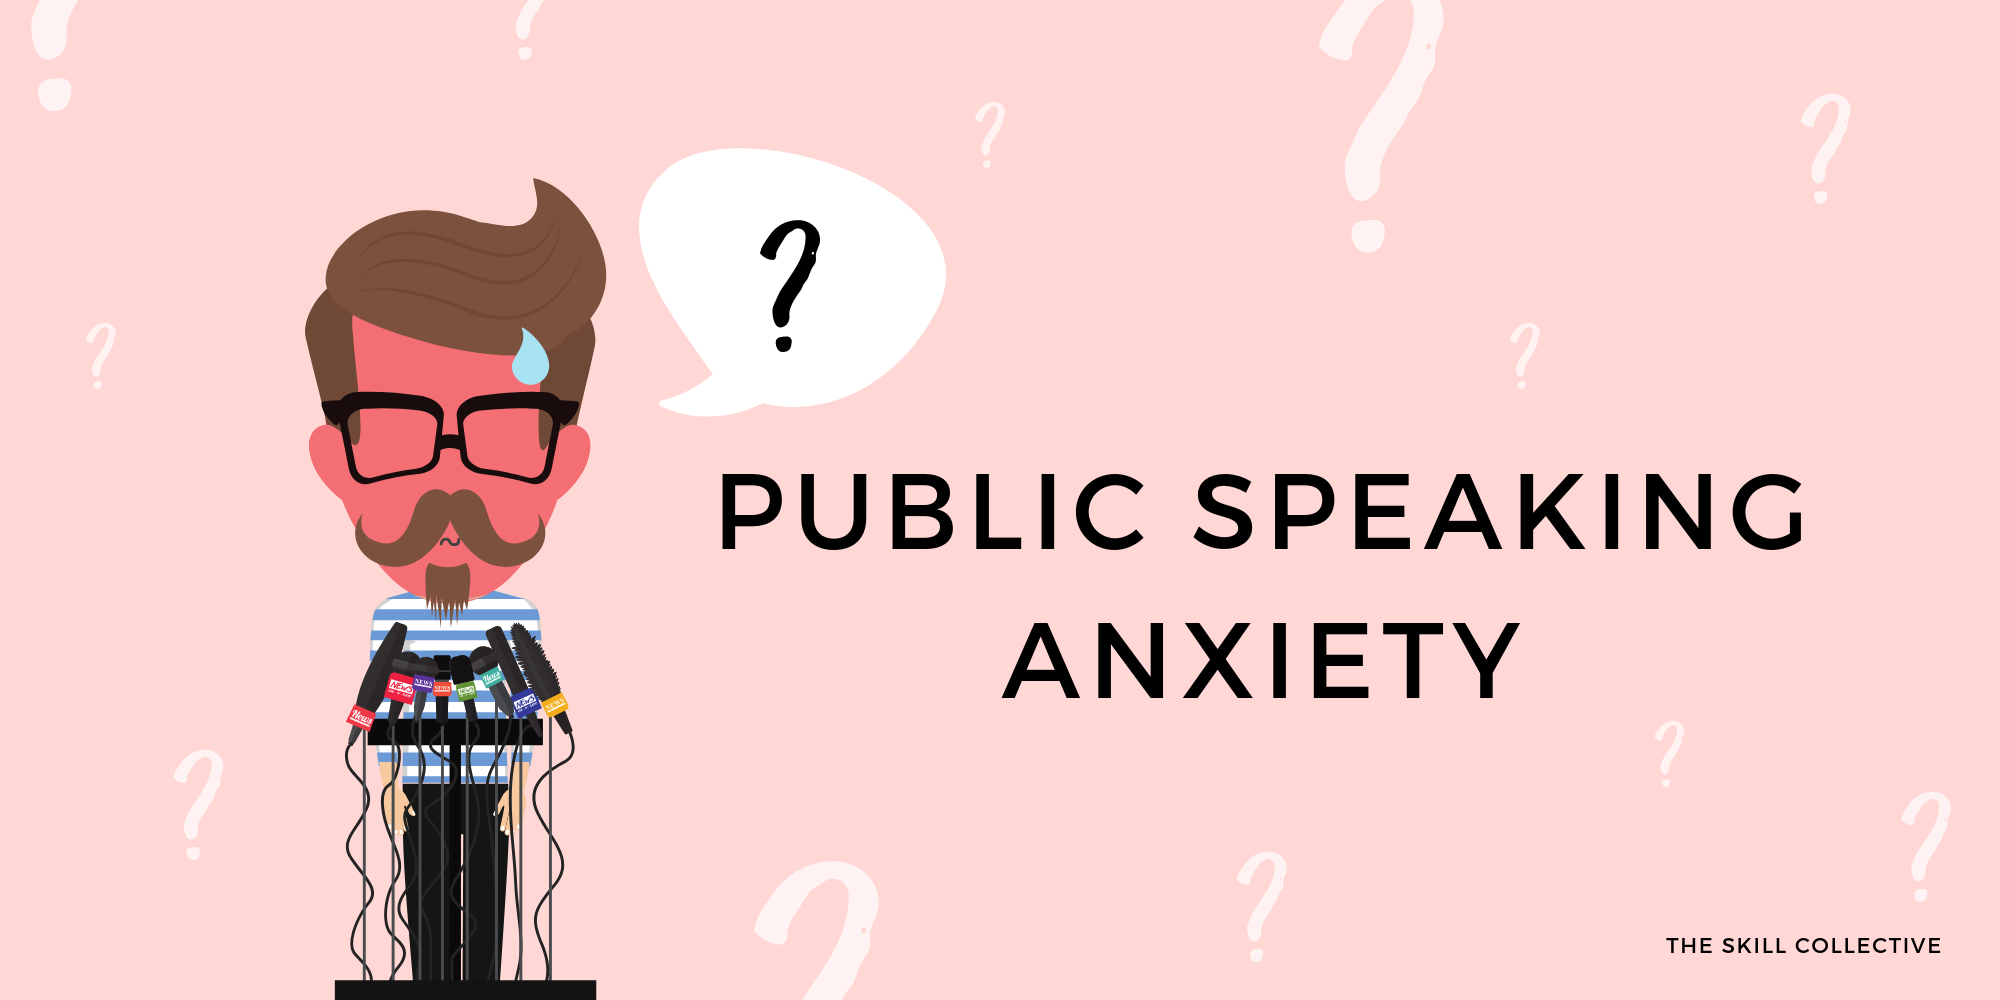 Public speaking anxiety tips treatment by The Skill Collective clinical psychologists in Subiaco Perth.png